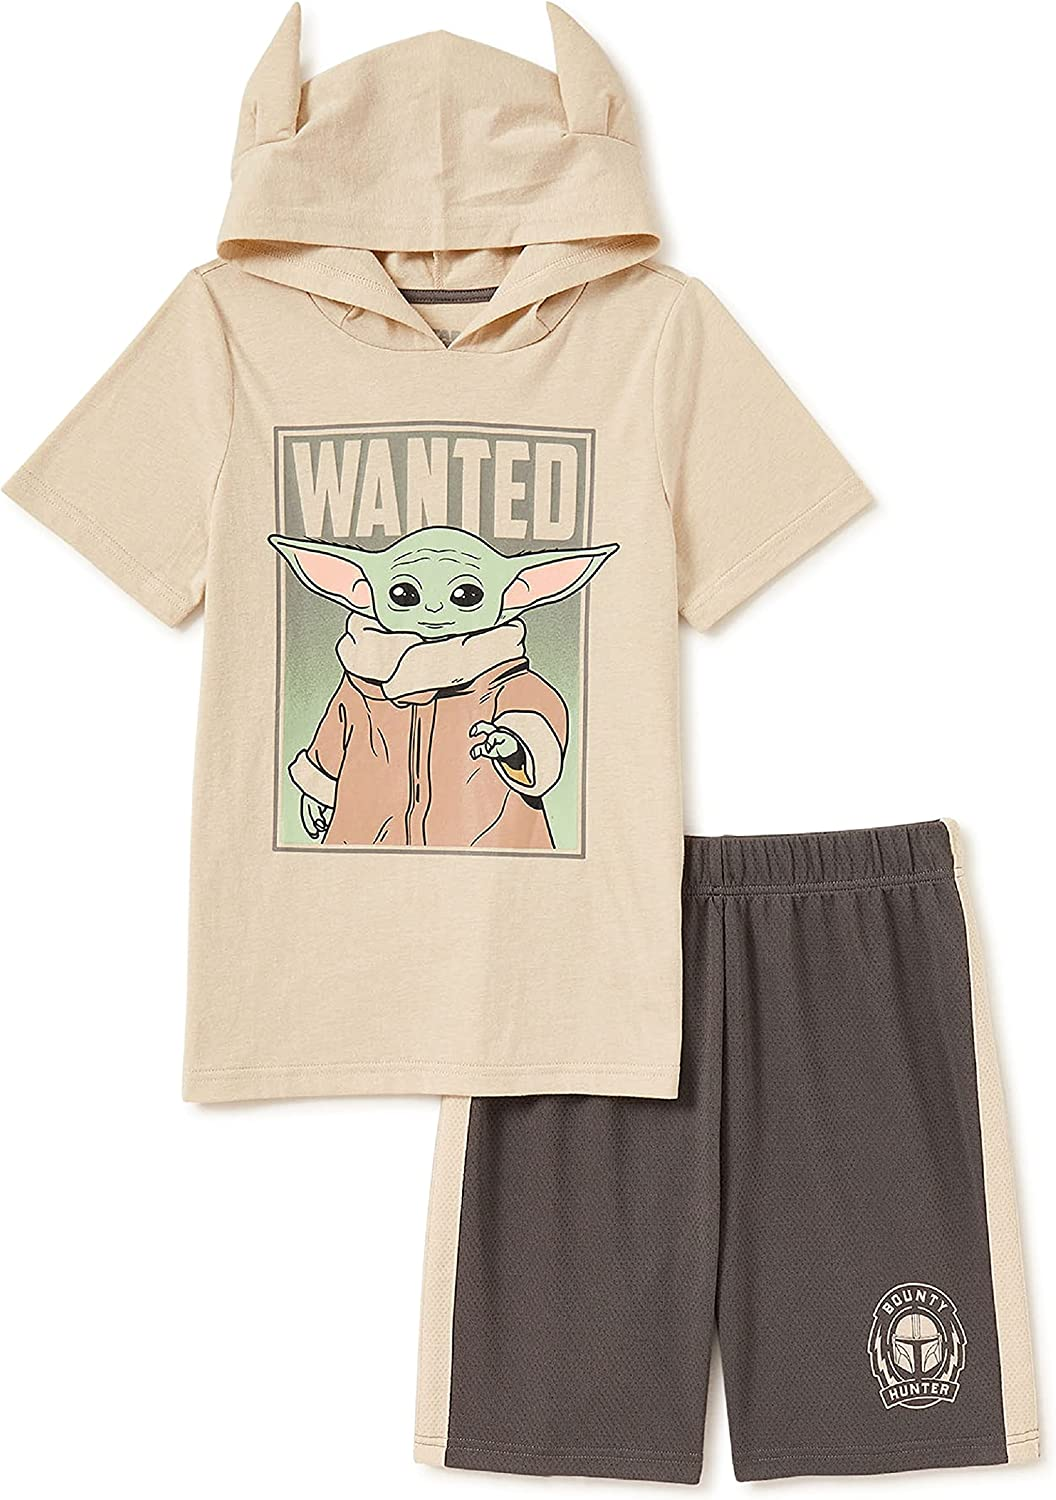 Yoda Boys' Hoodie T-Shirt & Knit Pull On Shorts, 2 Piece Outfit Set, (4) Green